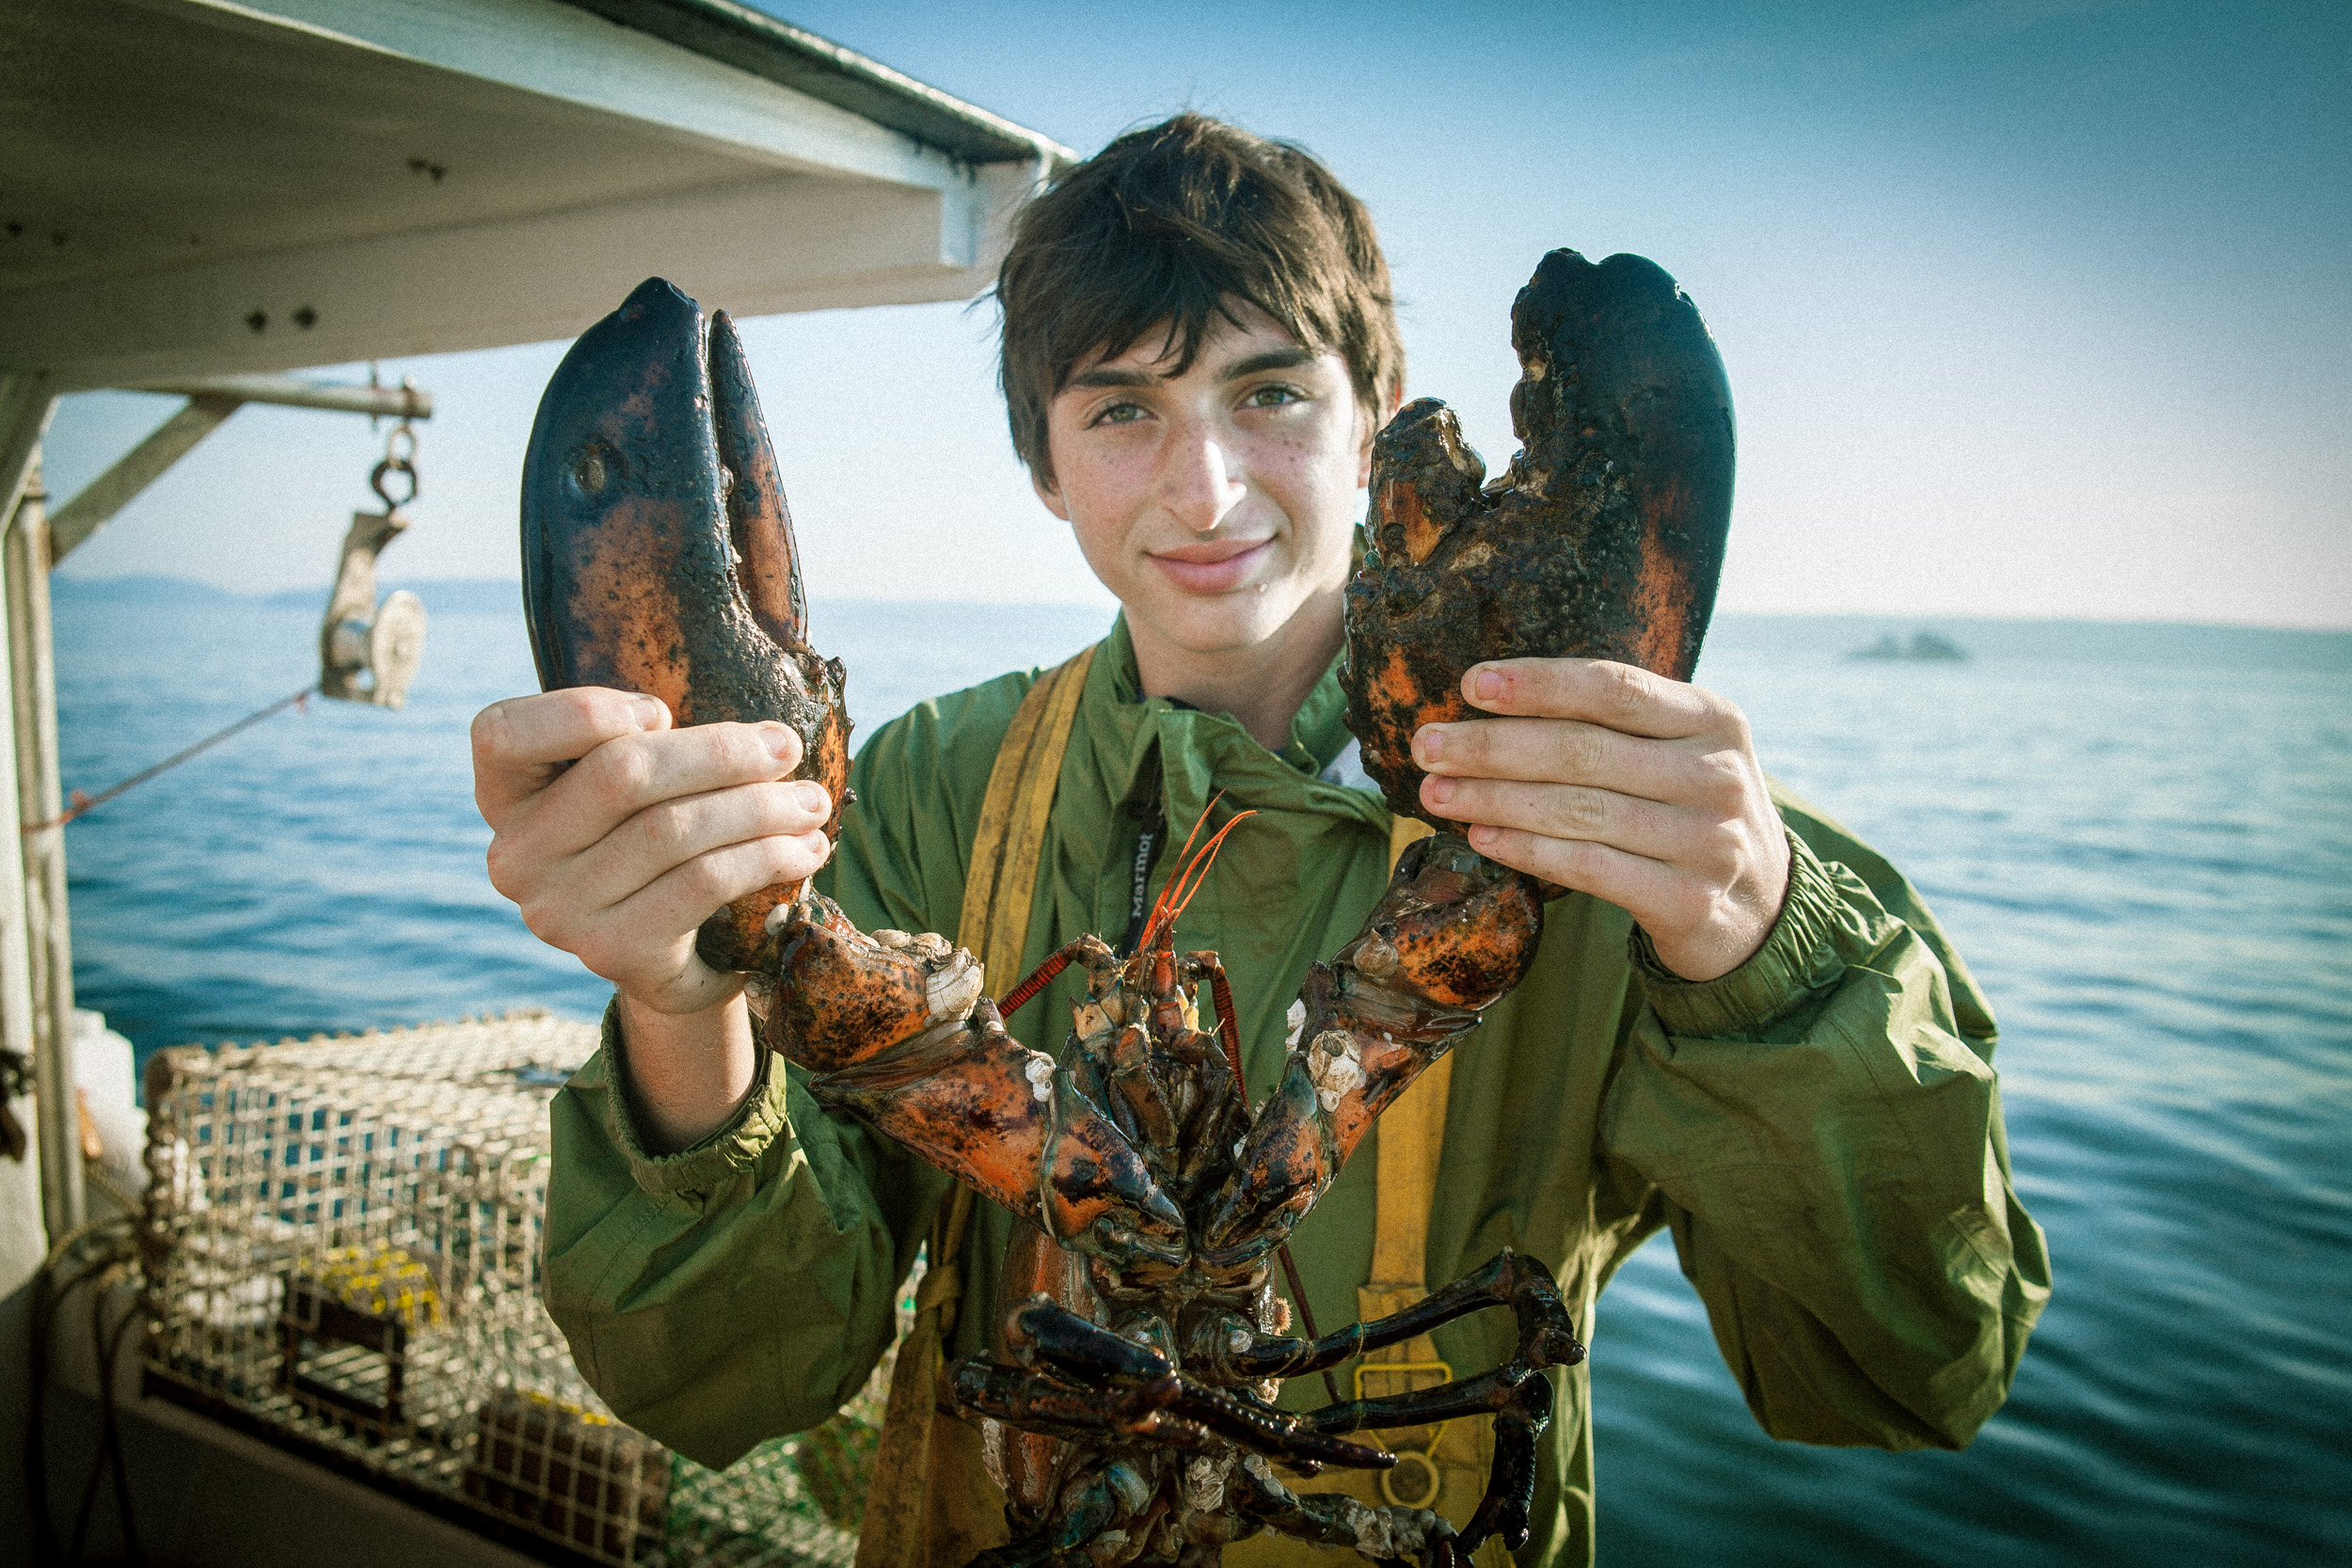 Boy holding lobster, shot by Steven P. Widoff